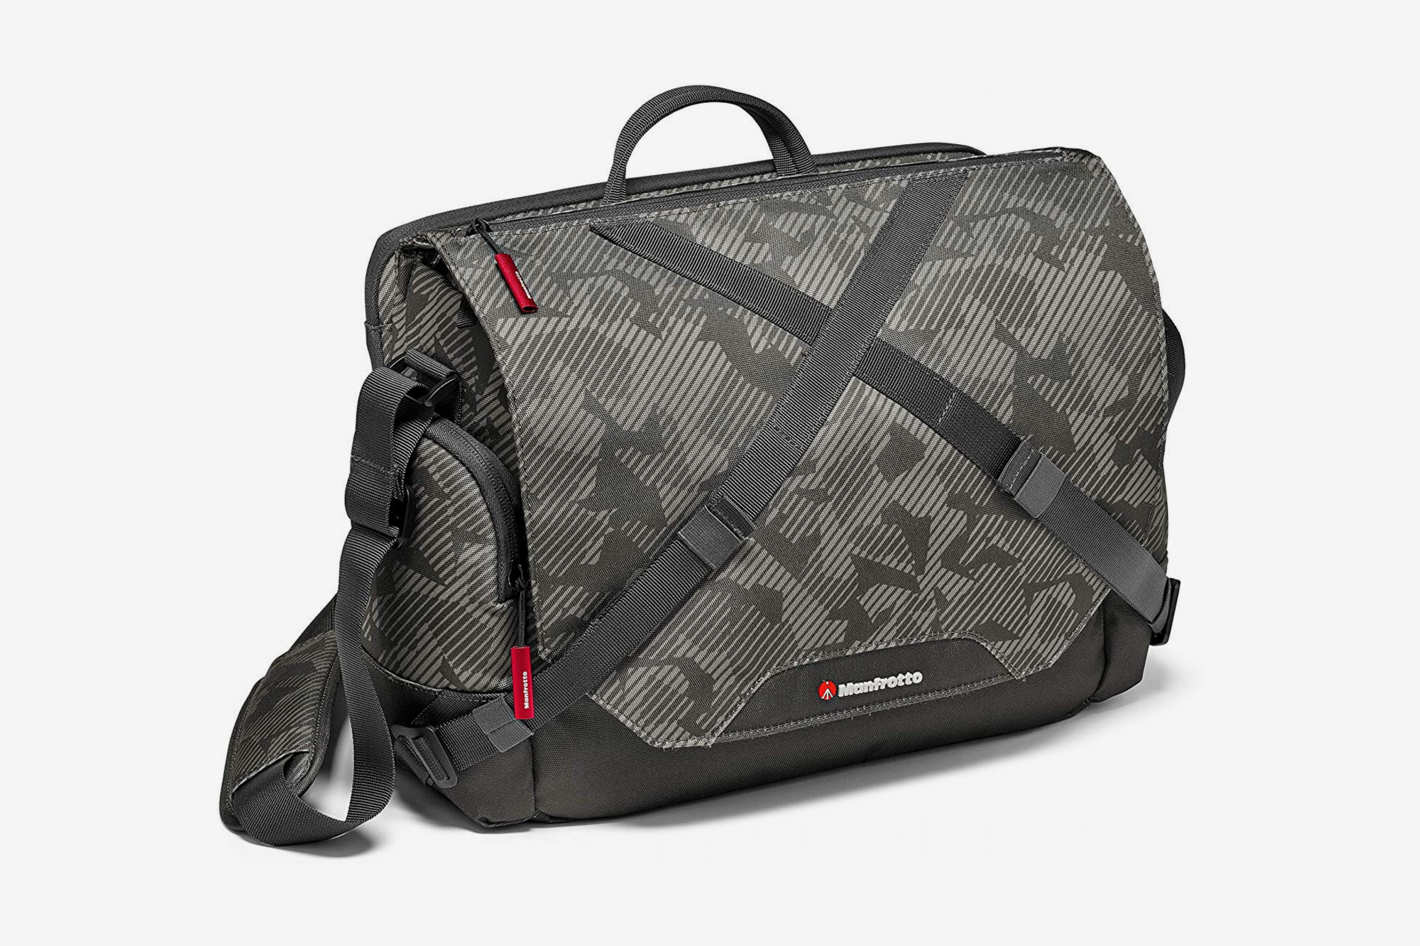 Manfrotto Noreg Messenger  - manfrotto noreg messenger - 13 Best Tech Gift Ideas for Techies Who Have Everything 2018